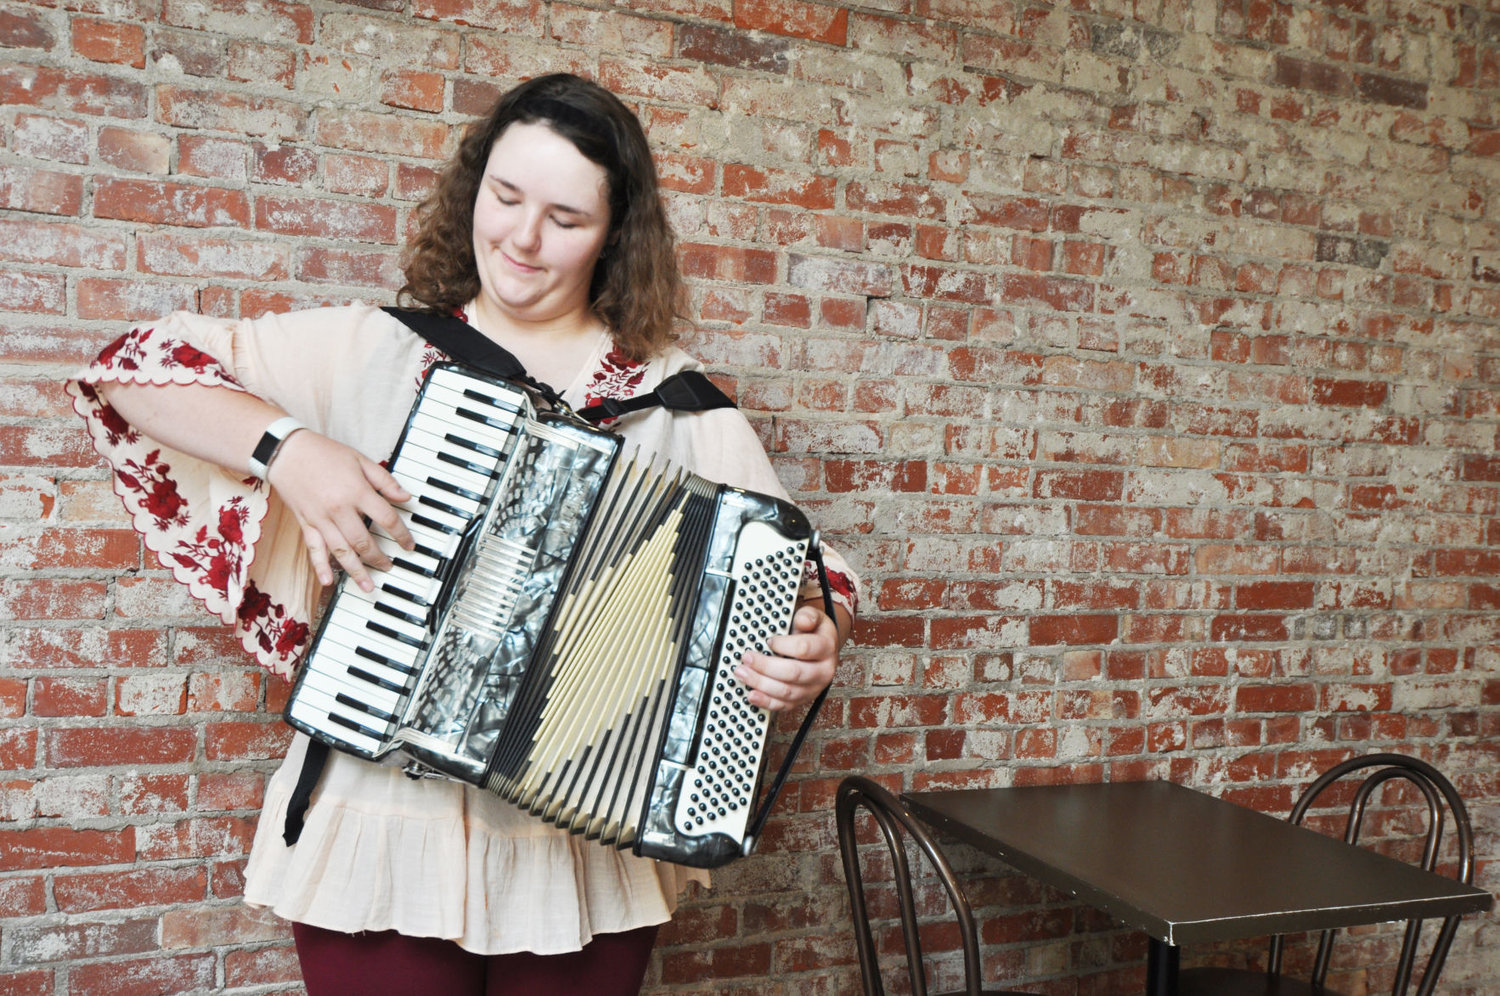 Accordion player to compete at national festival outside